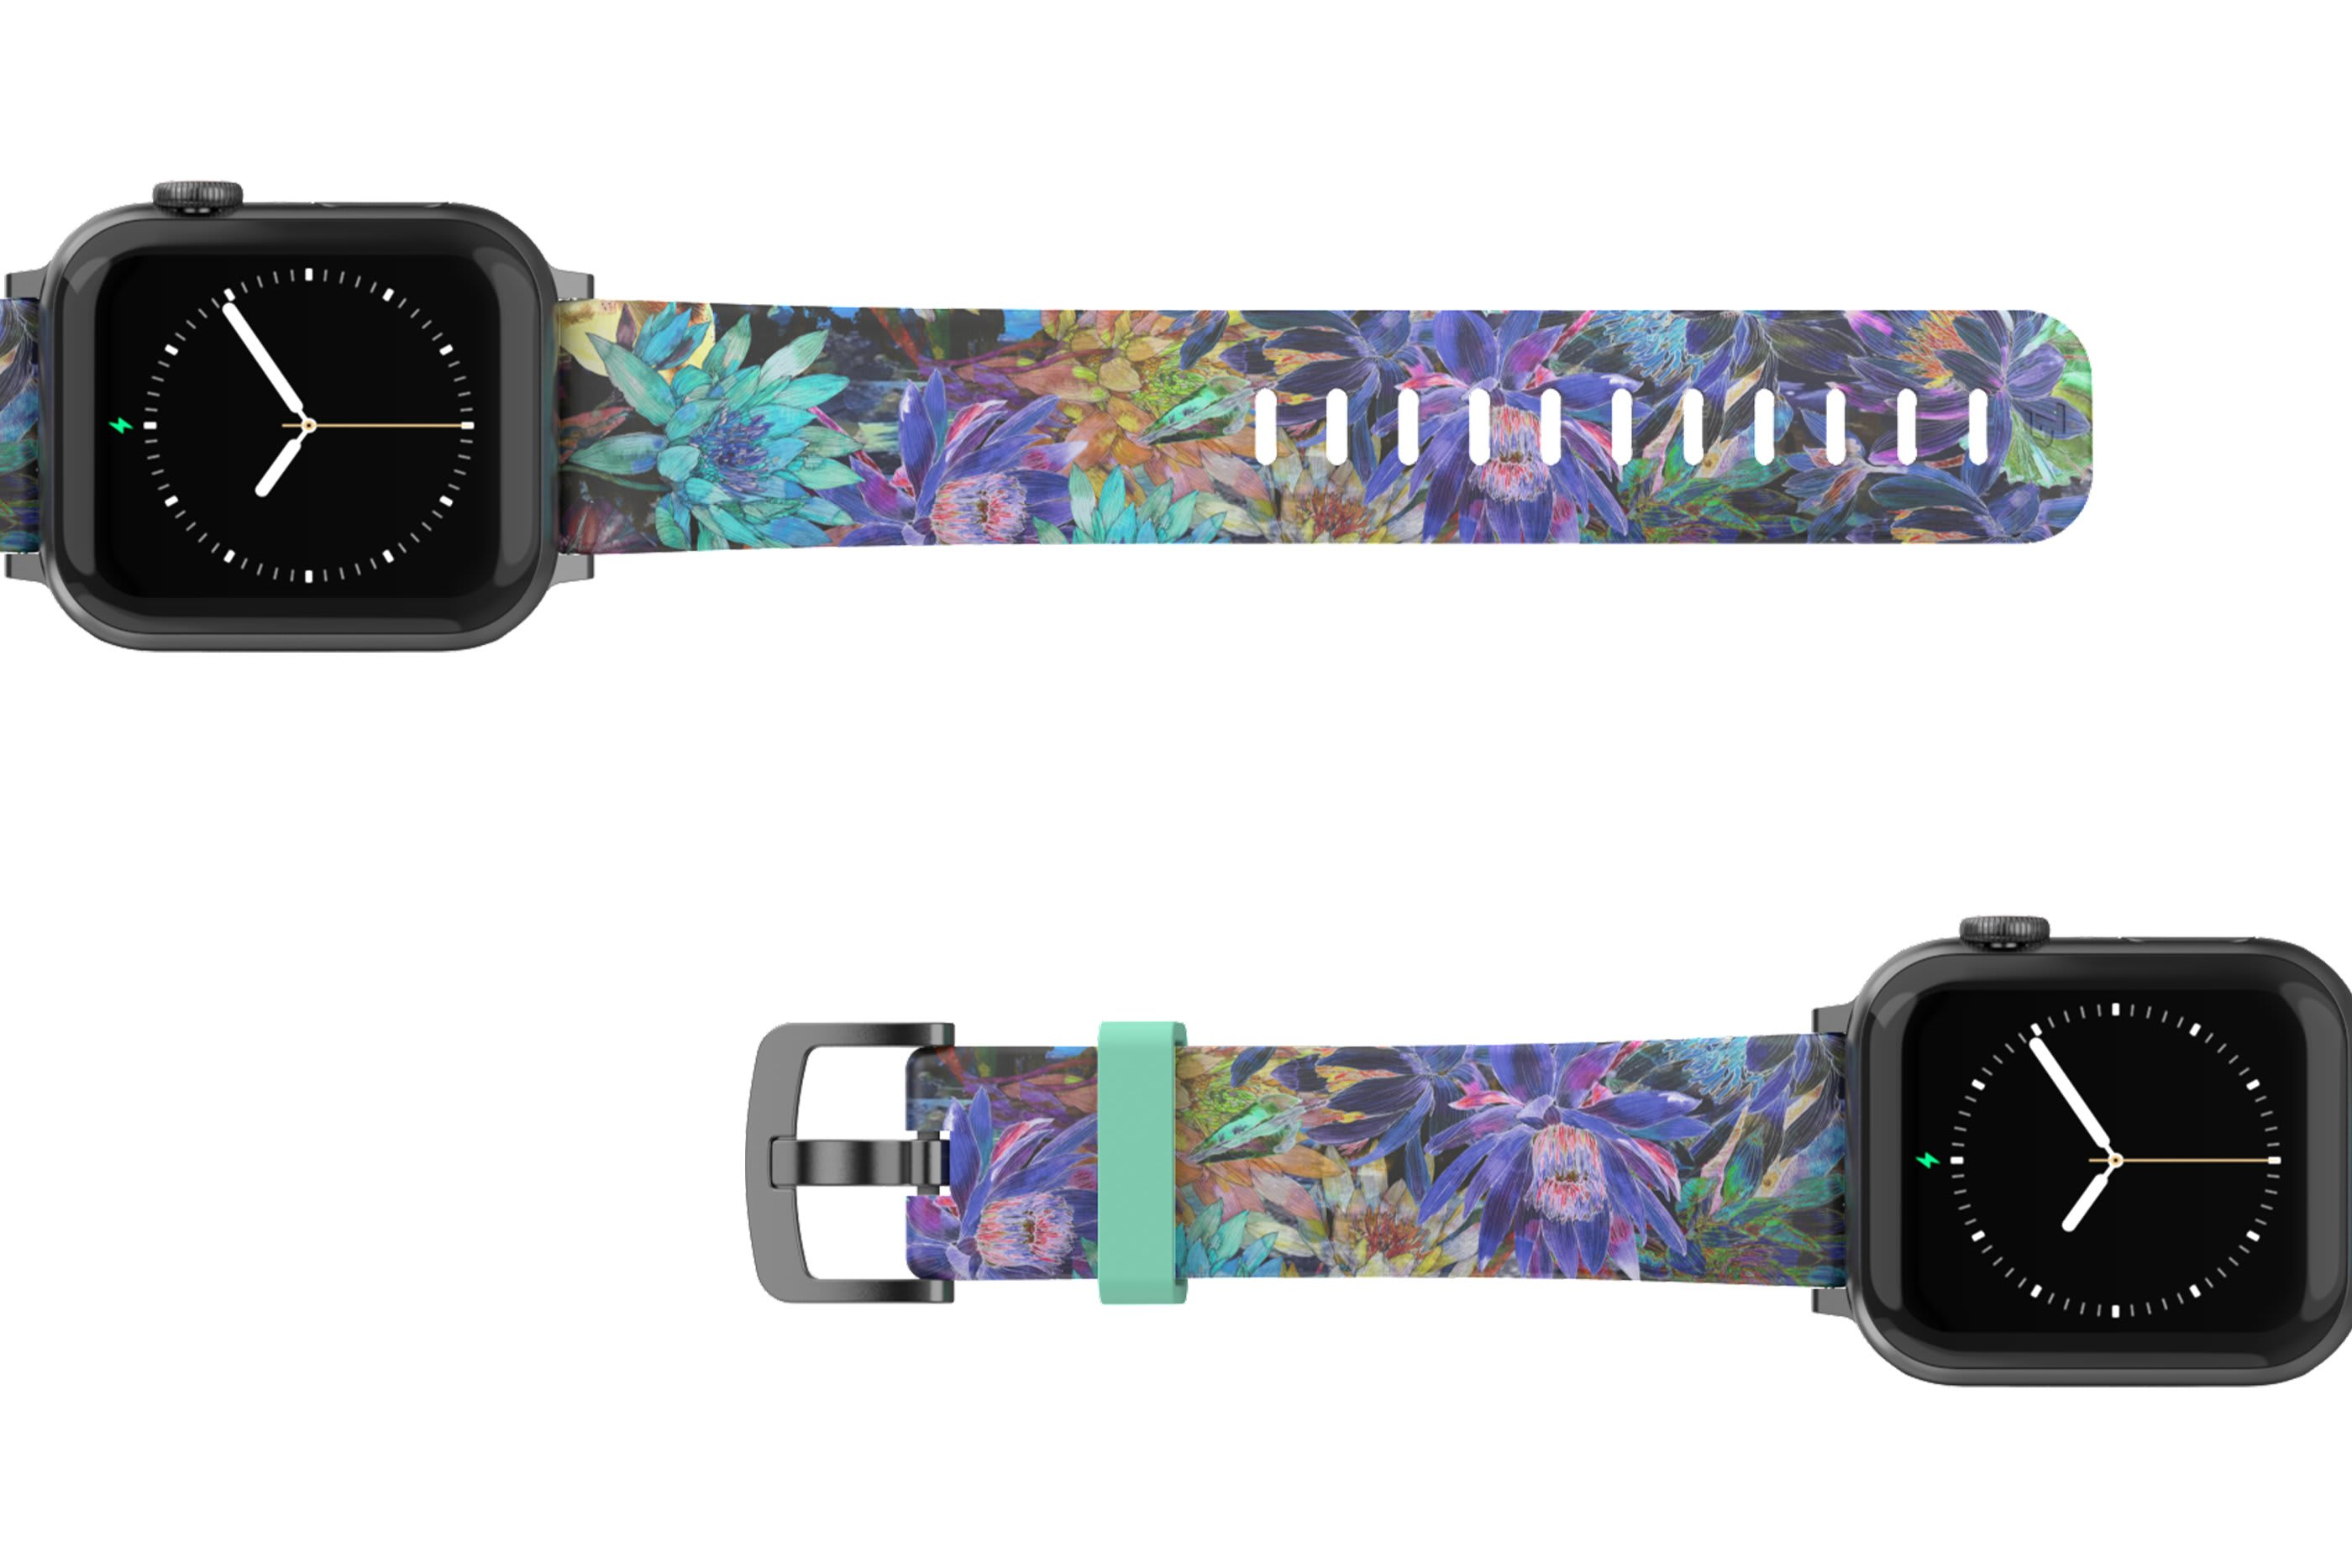 Twilight Blossom Apple Watch Band with gray hardware viewed top down